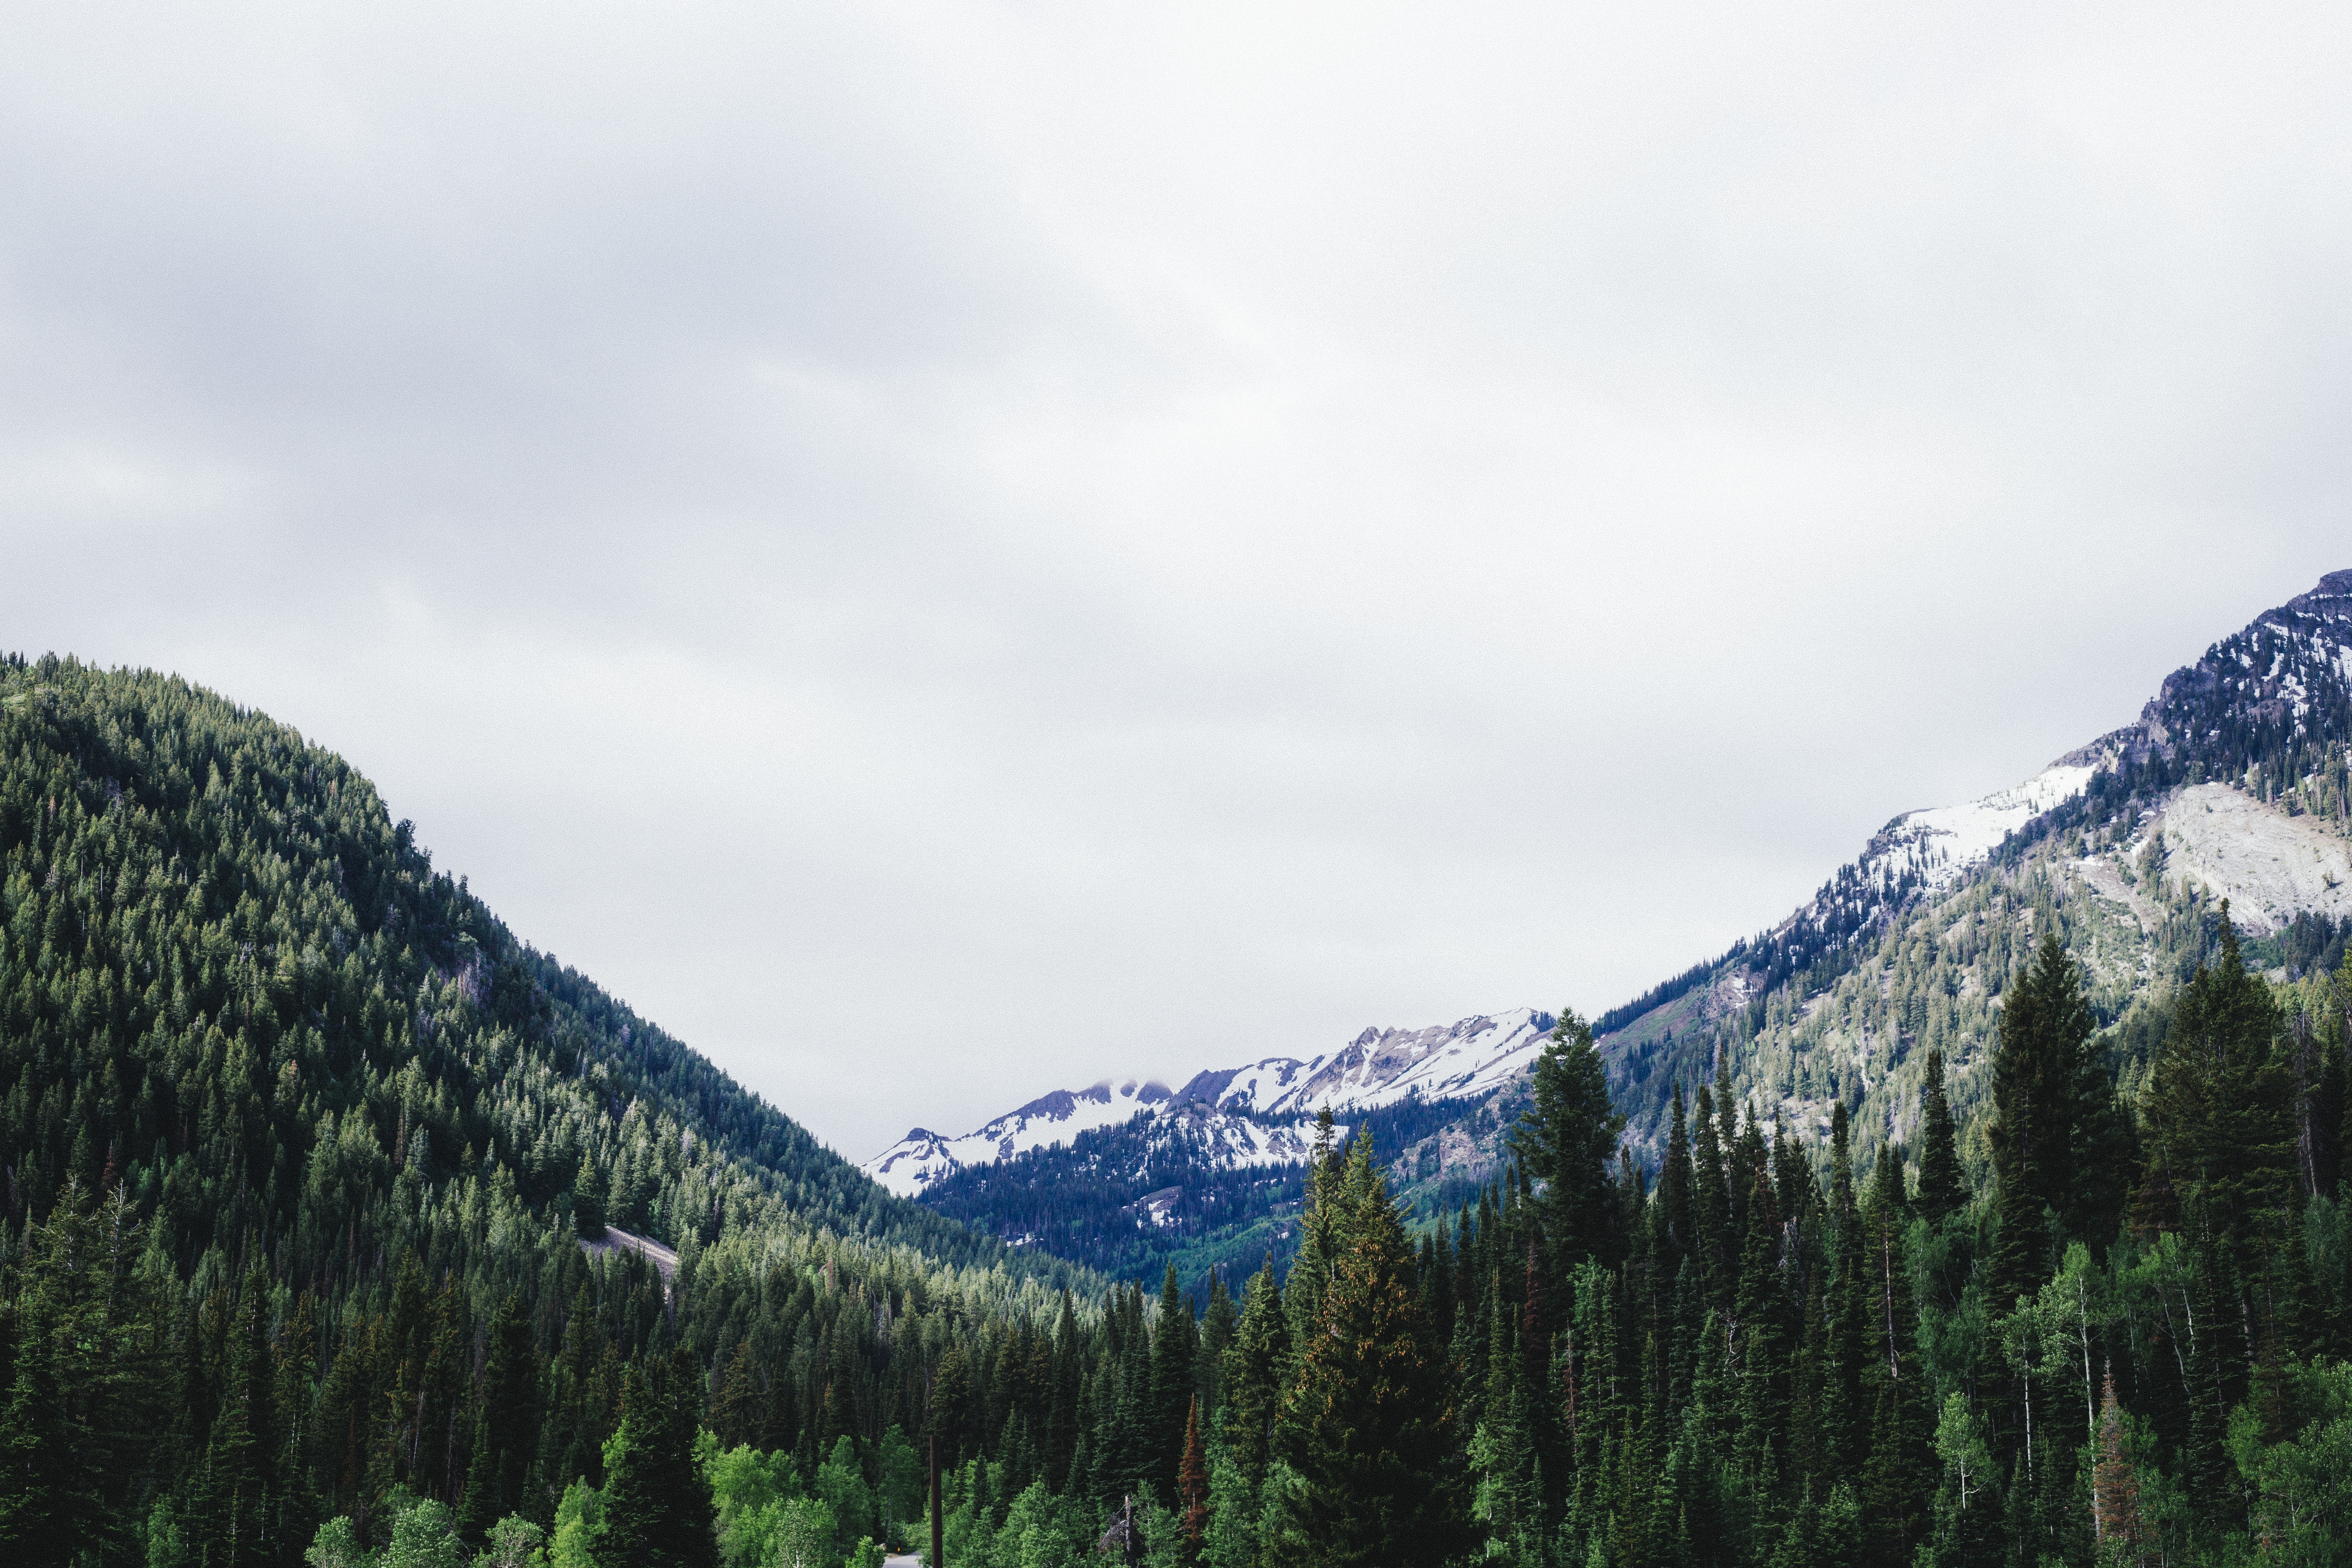 A wooded mountain pass with snowy mountaintops at the back in Big Cottonwood Canyon